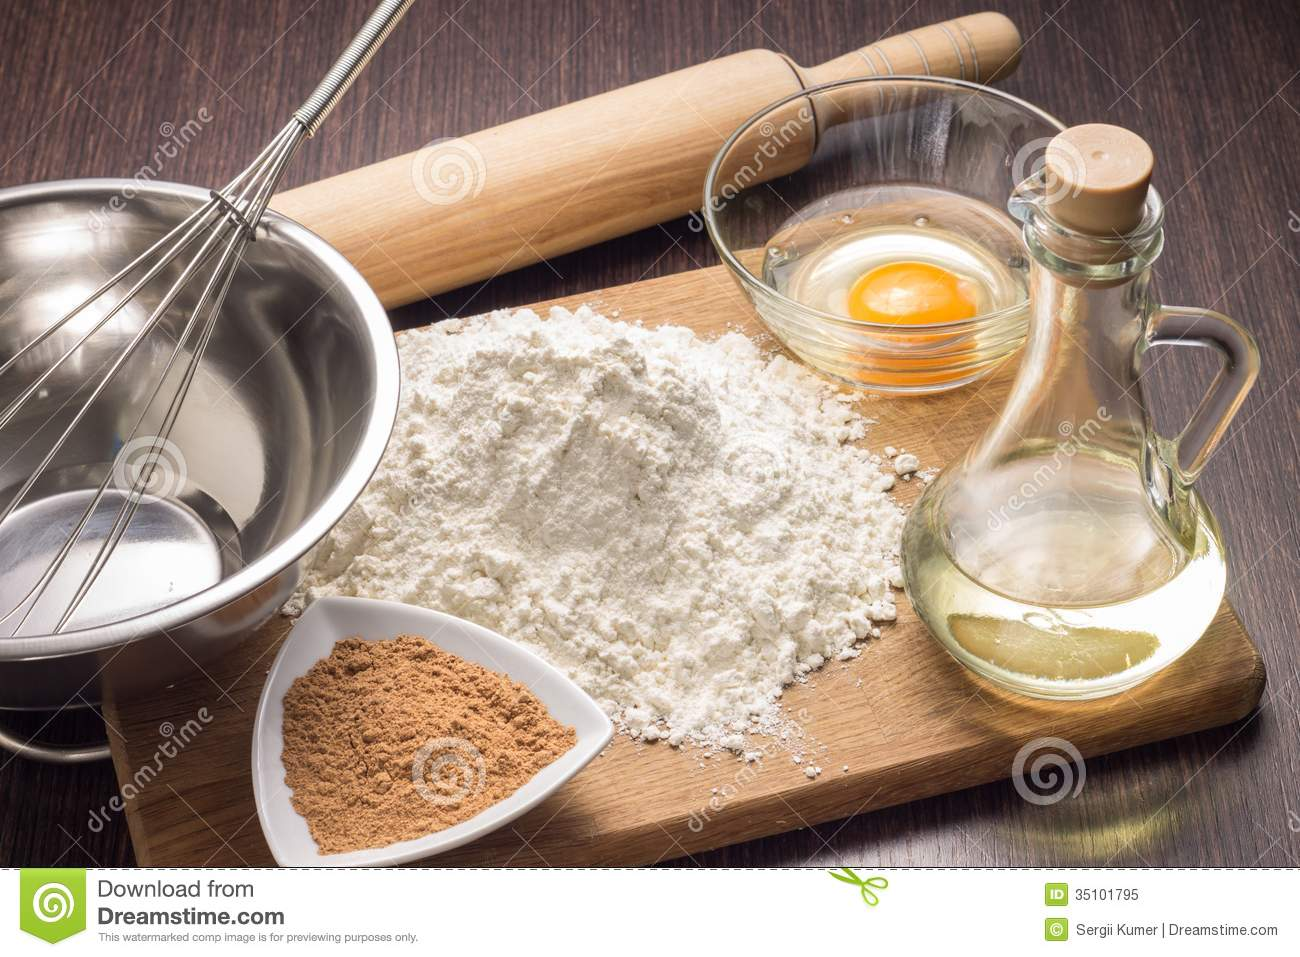 Baking Ingredients Background Royalty Free Stock Photo - Image ...